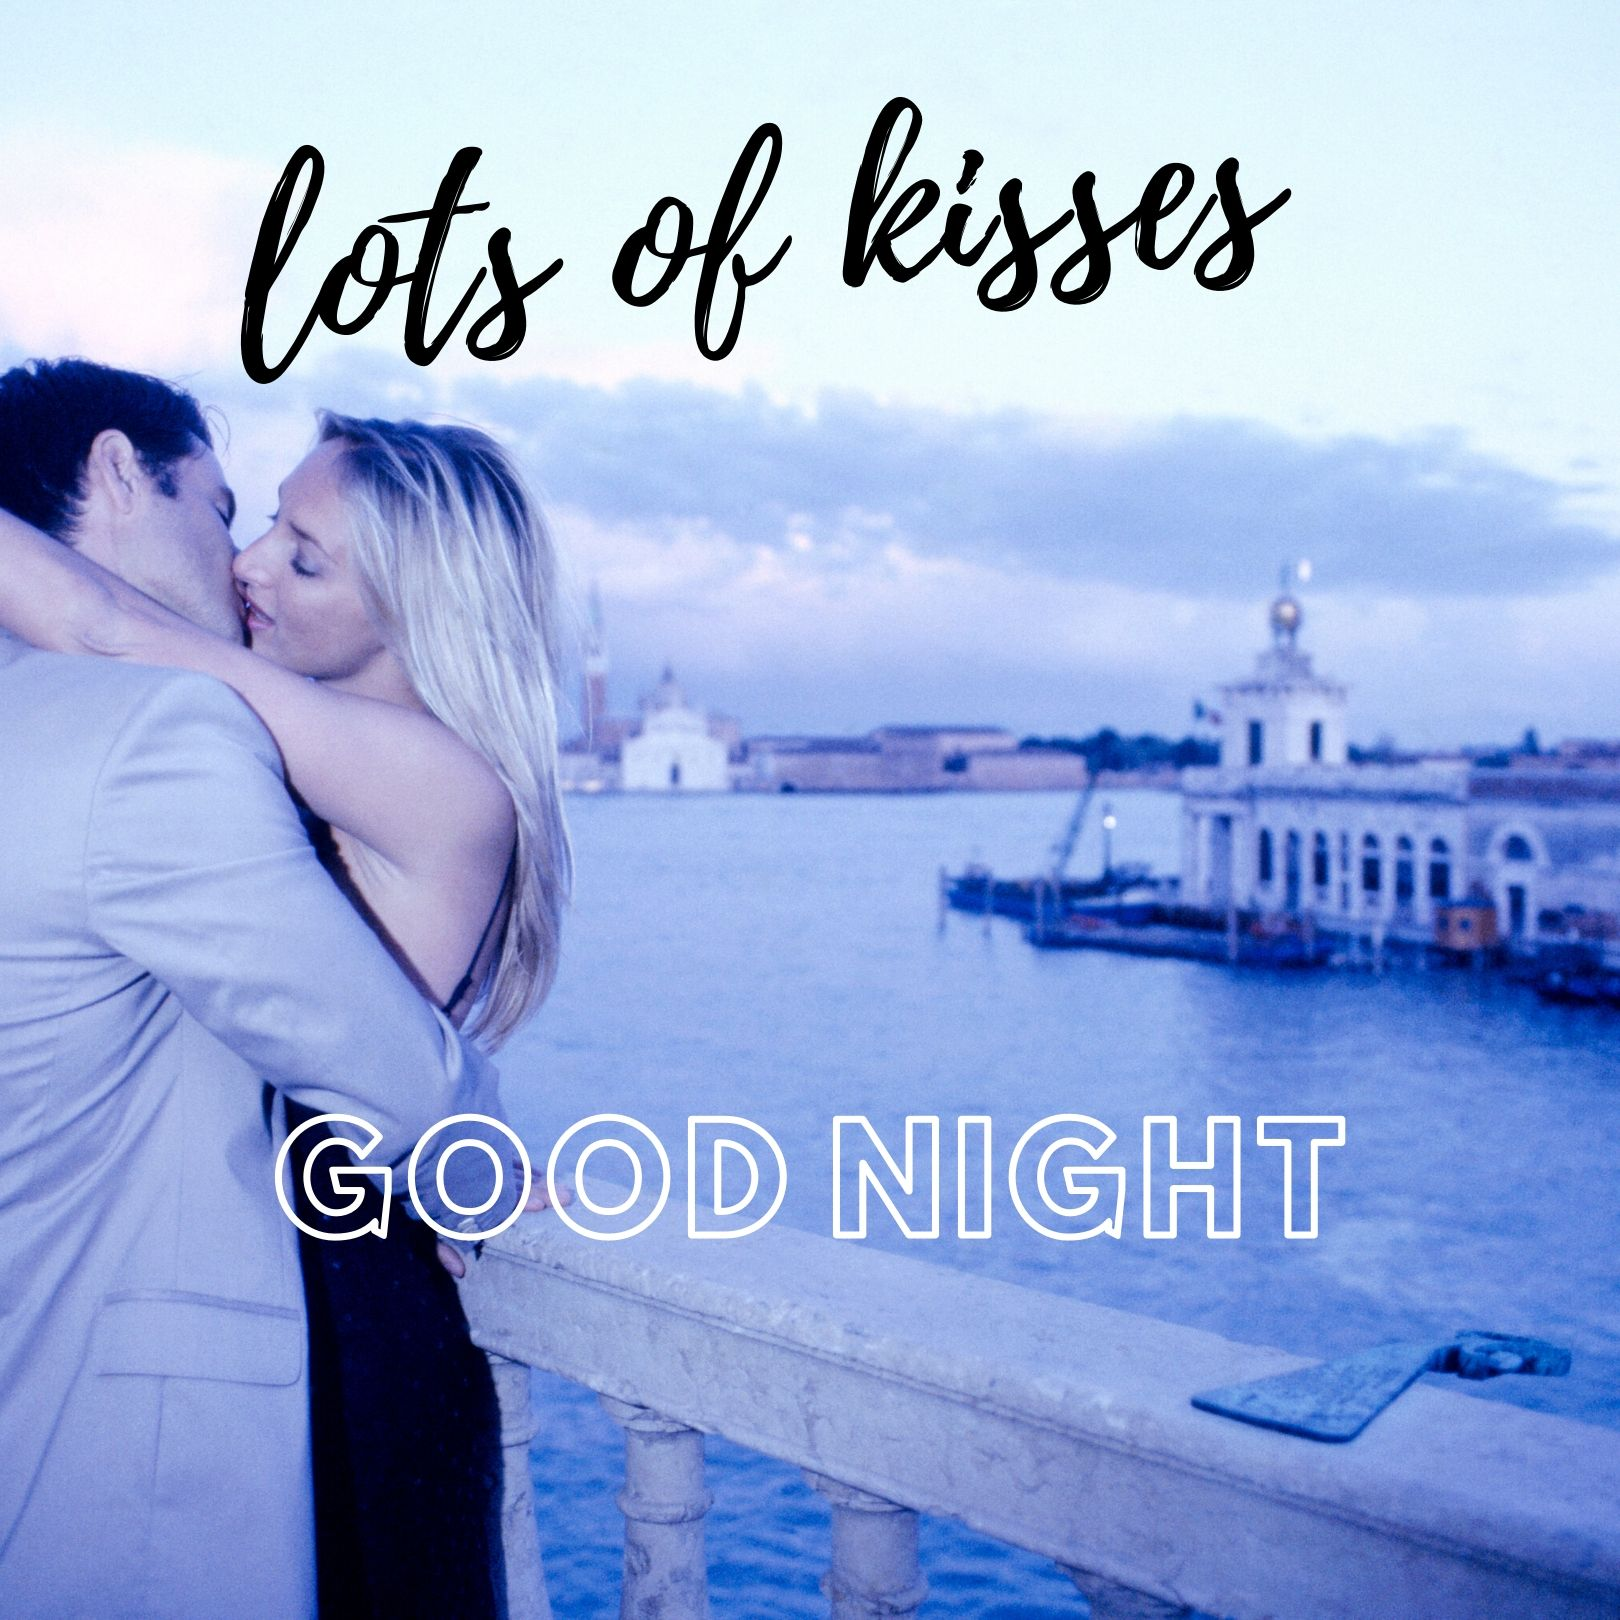 Good Night Lots of kisses Image full HD free download.